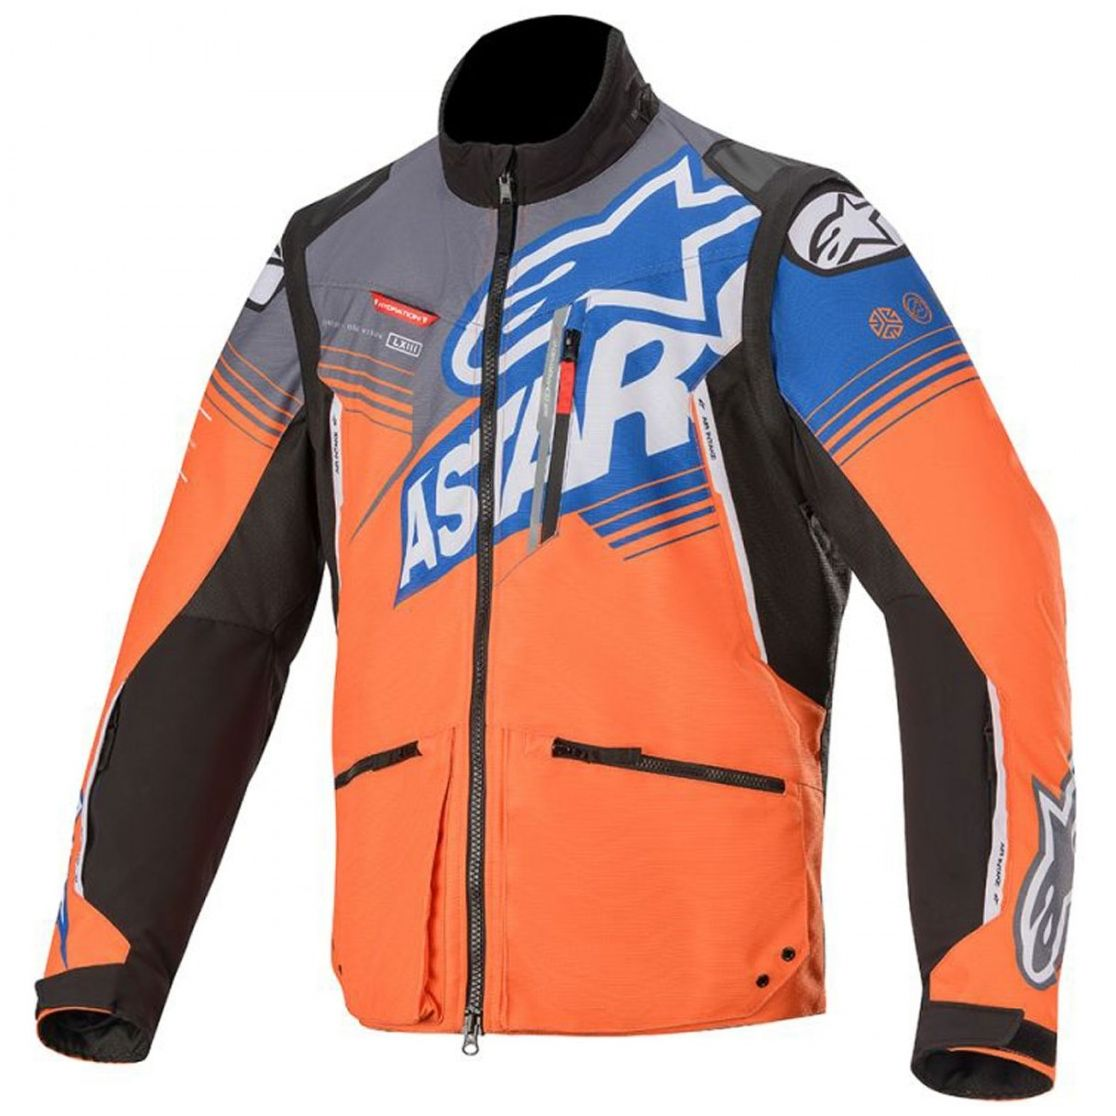 Veste enduro Alpinestars VENTURE R - ORANGE GRAY BLUE 2020